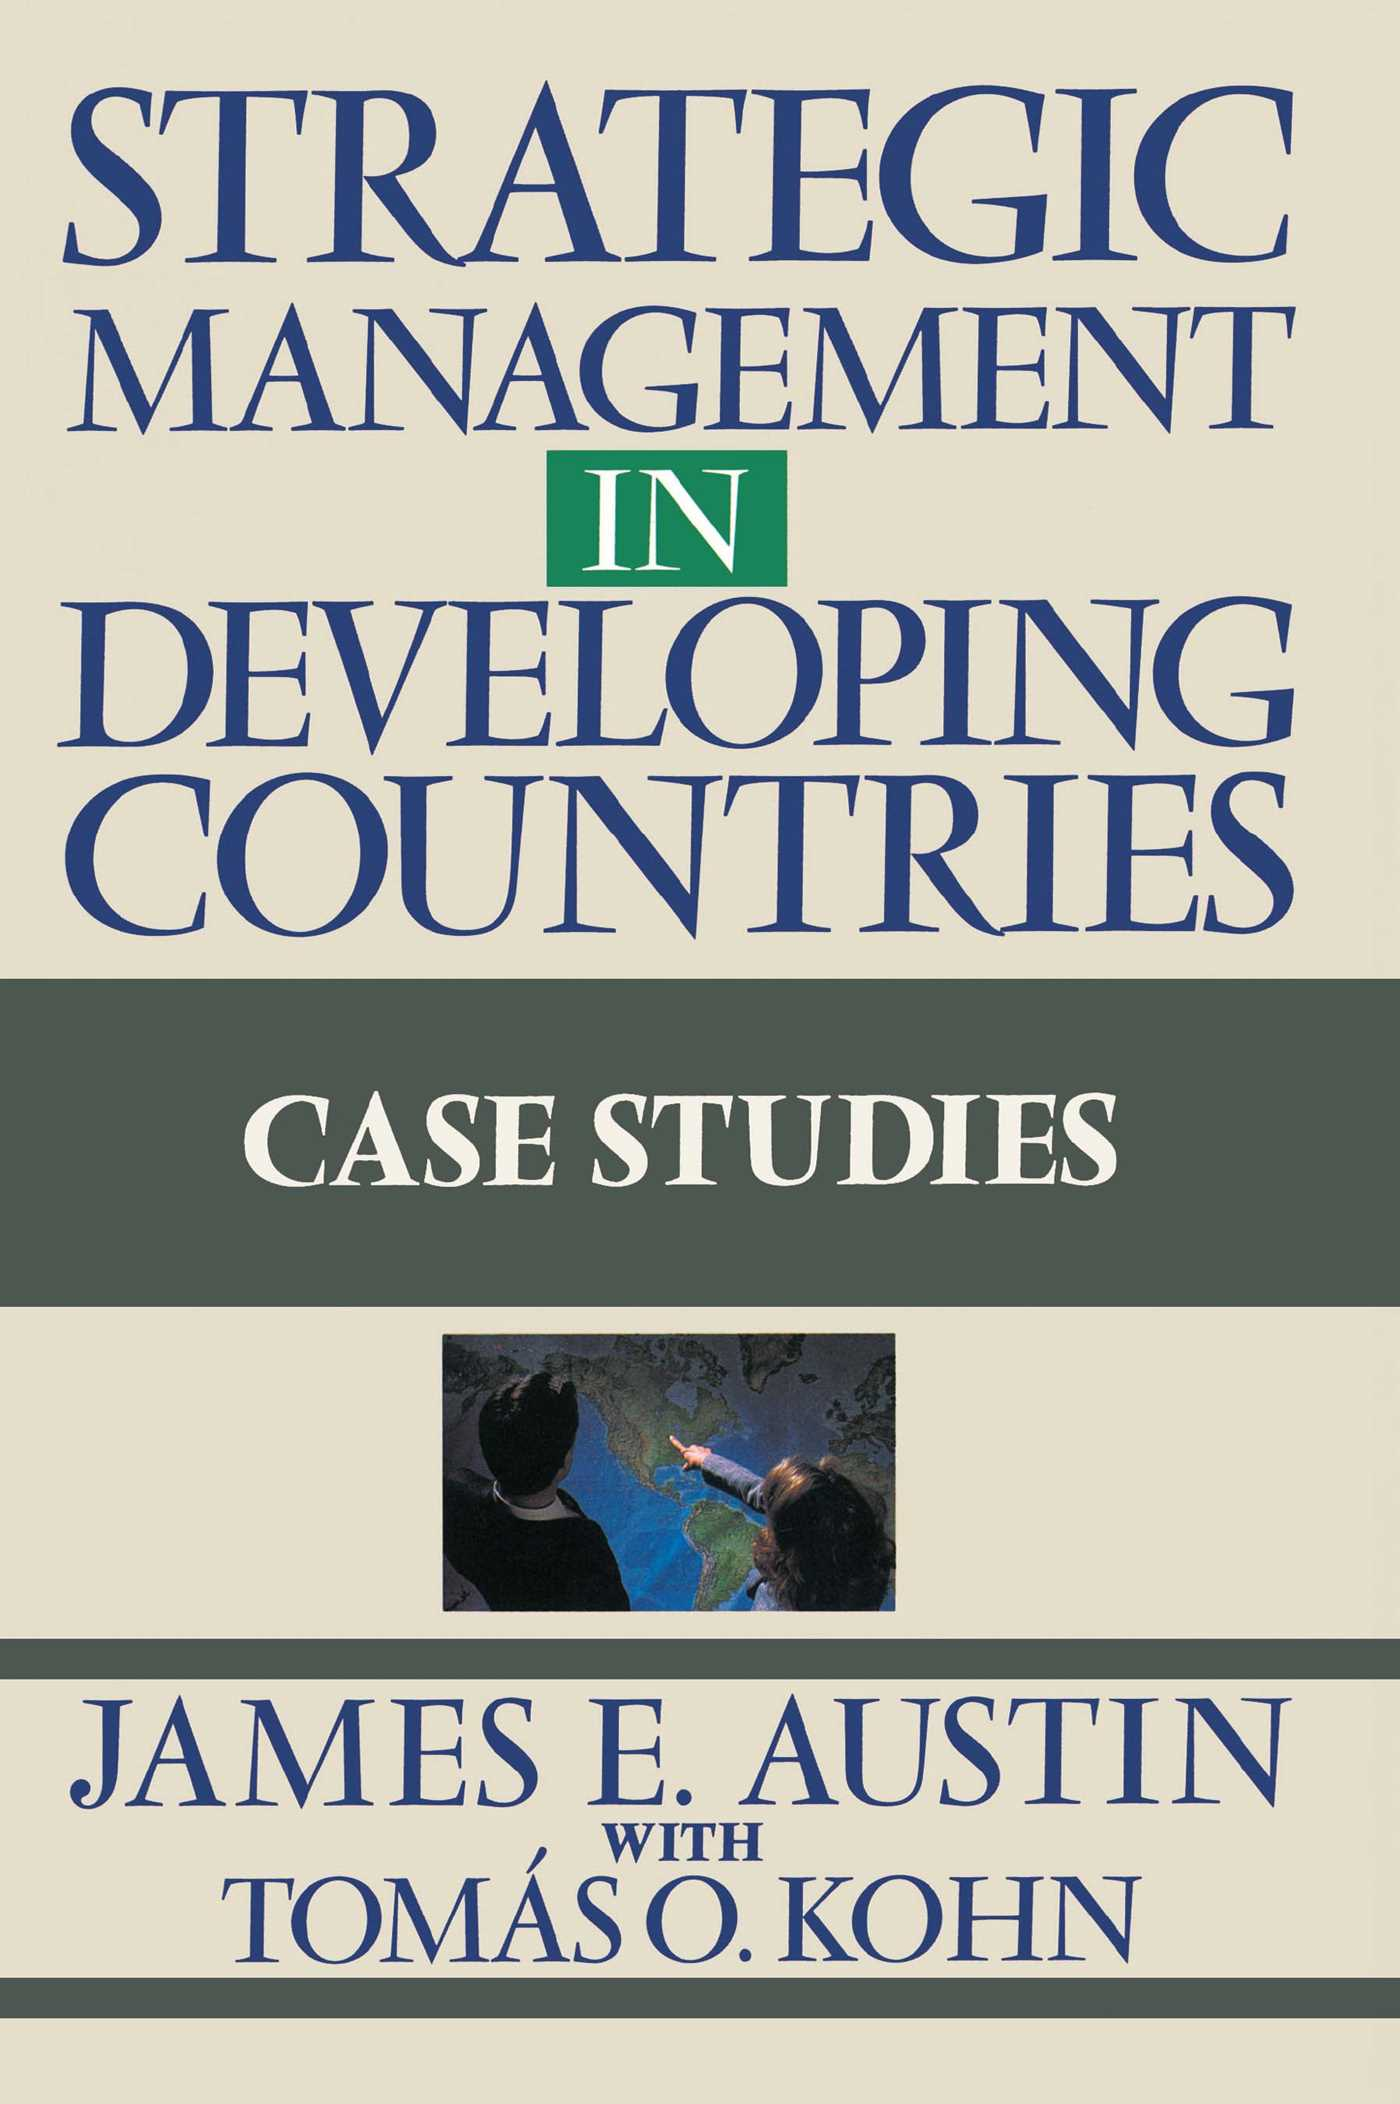 Strategic-management-in-developing-countries-9780684863702_hr